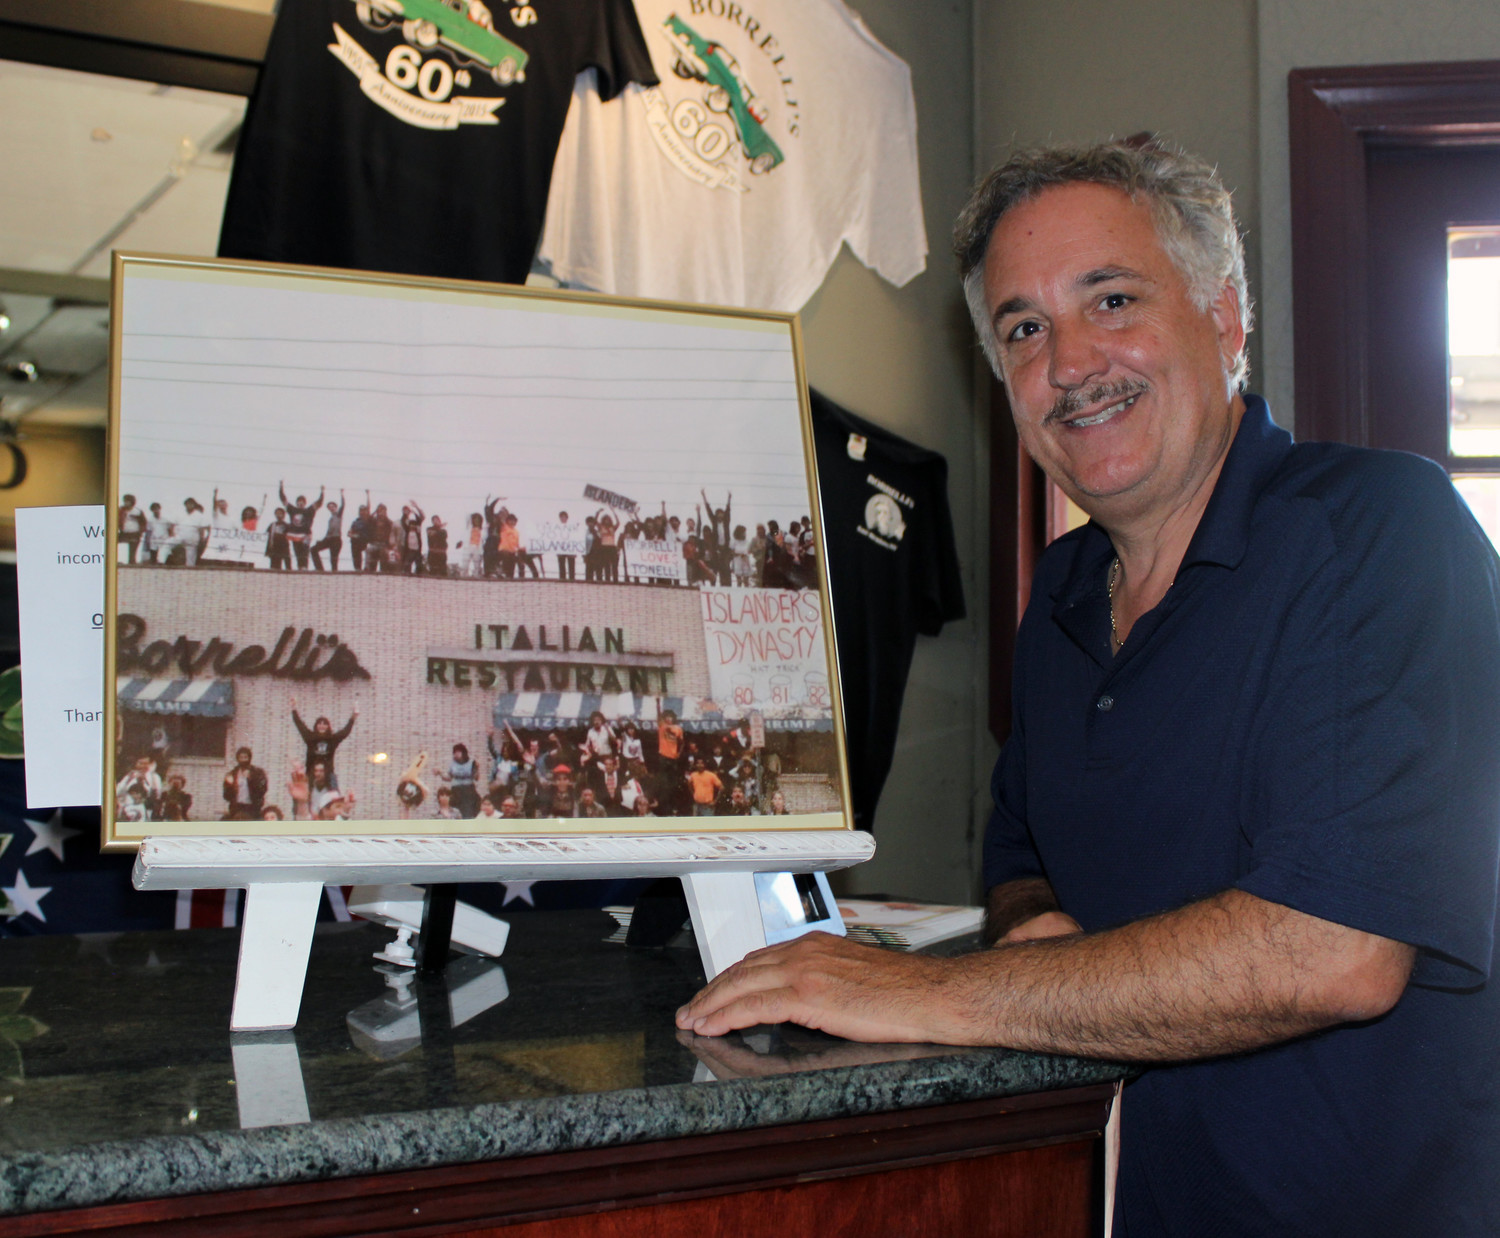 Frank Borelli remembers a spring day in 1981 when 30,000 hockey fans marched past Borelli's and down Hempstead Turnpike: The New York Islanders had won the second of their four Stanley Cup titles the day before.